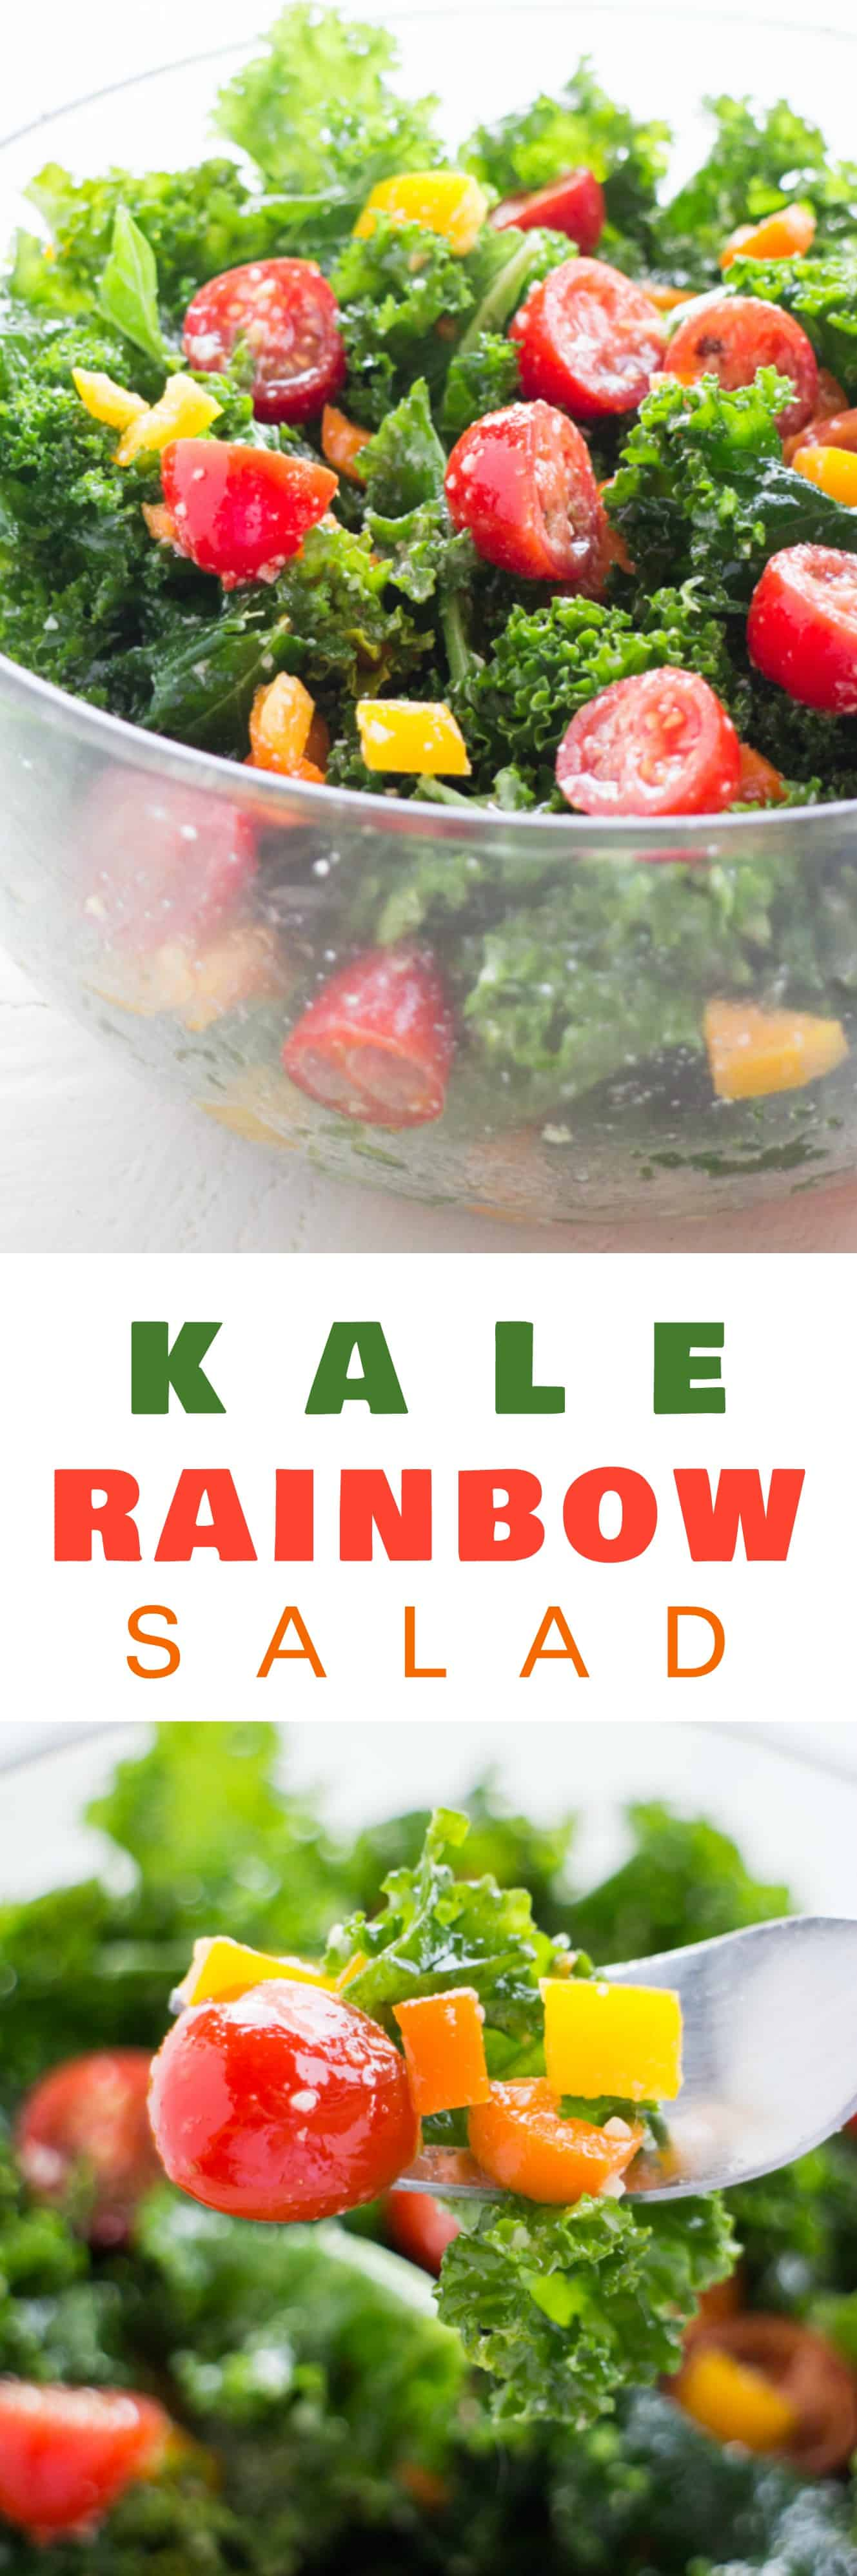 Kale Salad with Cherry Tomatoes and olive oil dressing is a healthy salad recipe!  This easy salad includes massaged kale, cherry tomatoes and sweet peppers to make it a gorgeous rainbow salad! This salad is perfect for family dinners and big crowds.